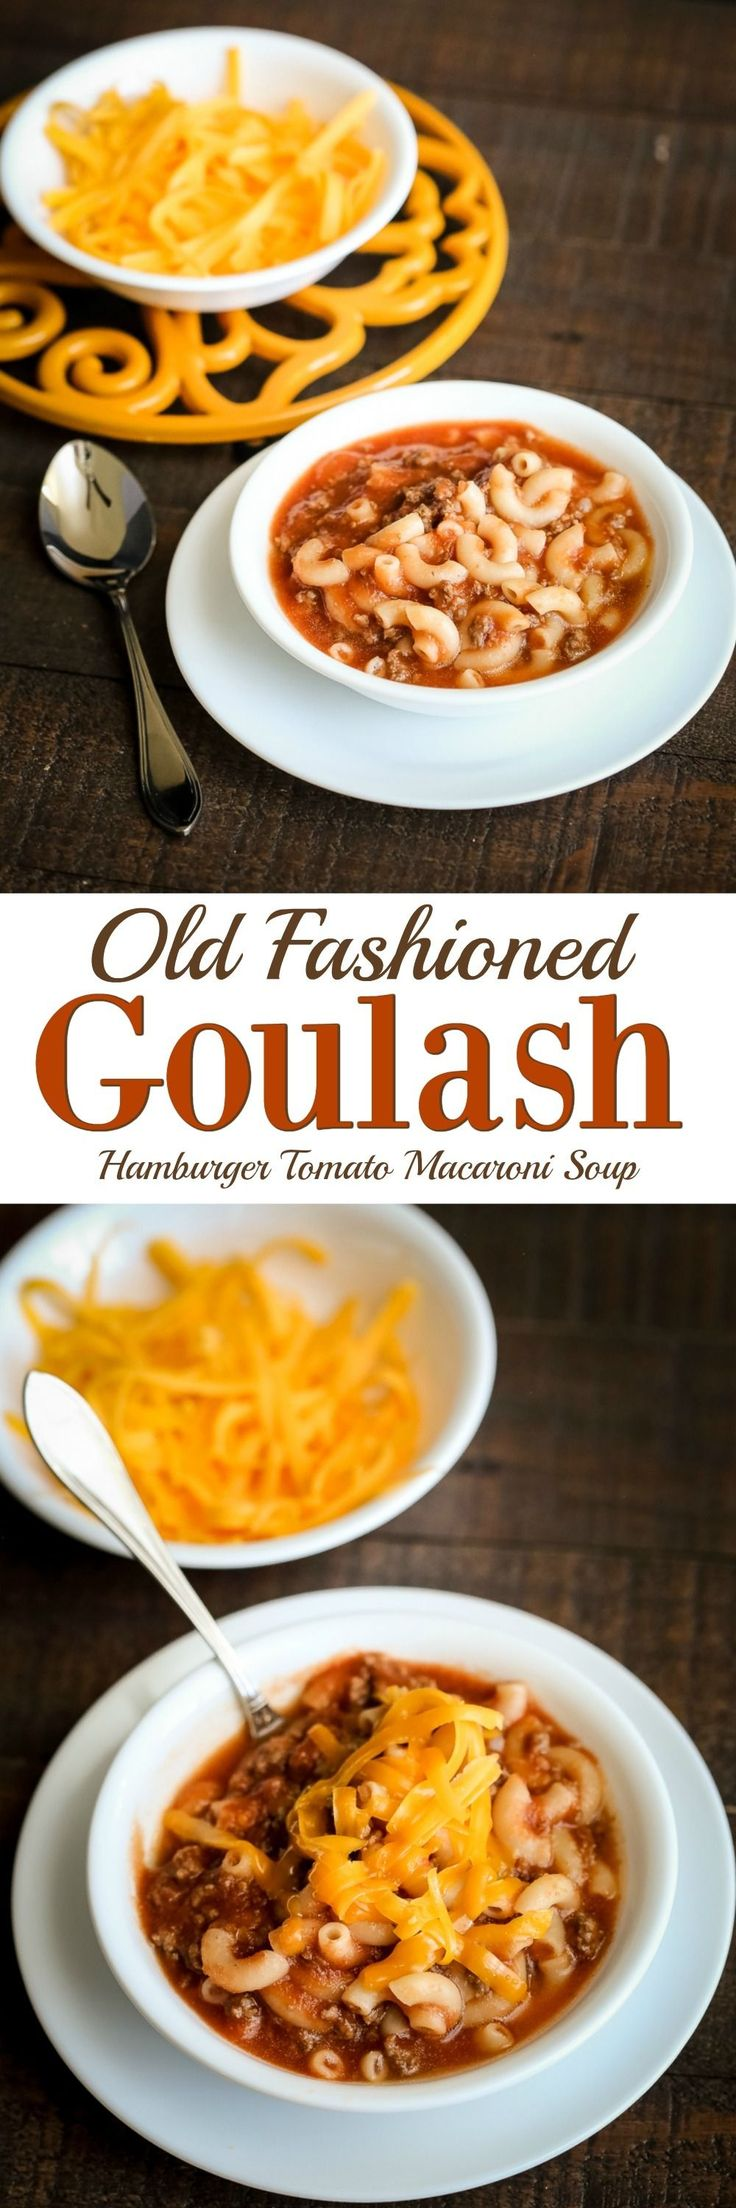 This Old Fashioned Goulash soup recipe is one that everyone loves! A perfect blend of hamburger, noodles, tomato base & spices that entice requests for more